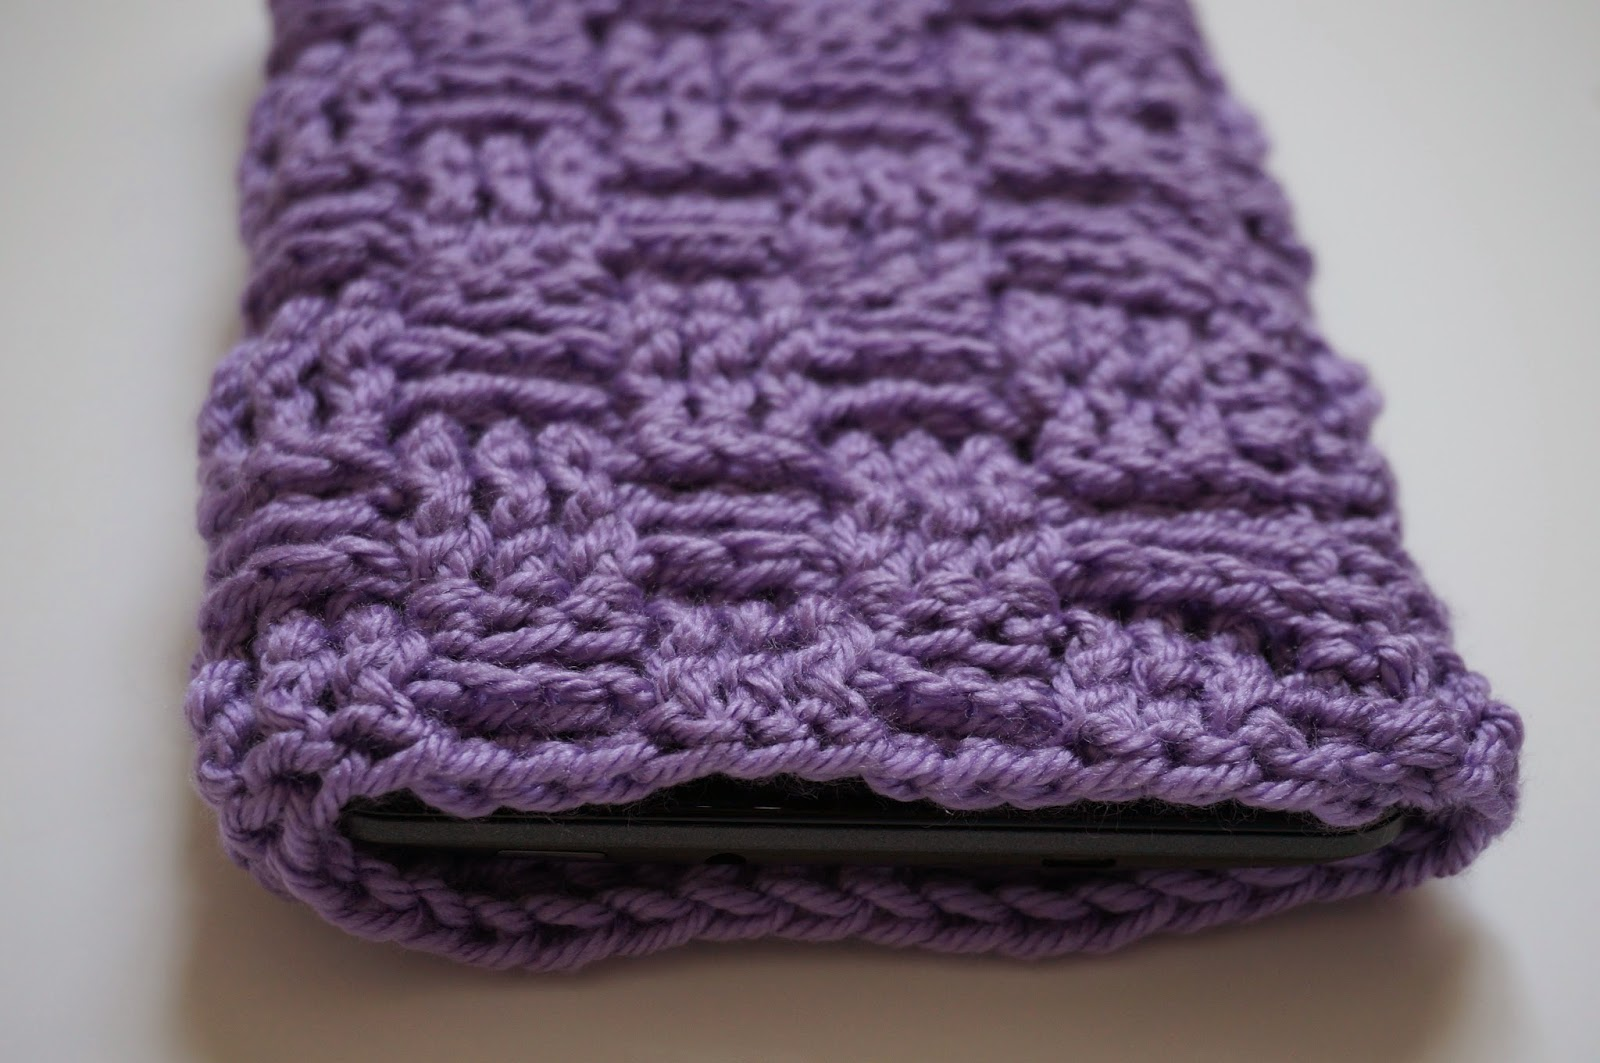 How To Make A Basket Weave Crochet Stitch : Basket weave crochet stitch